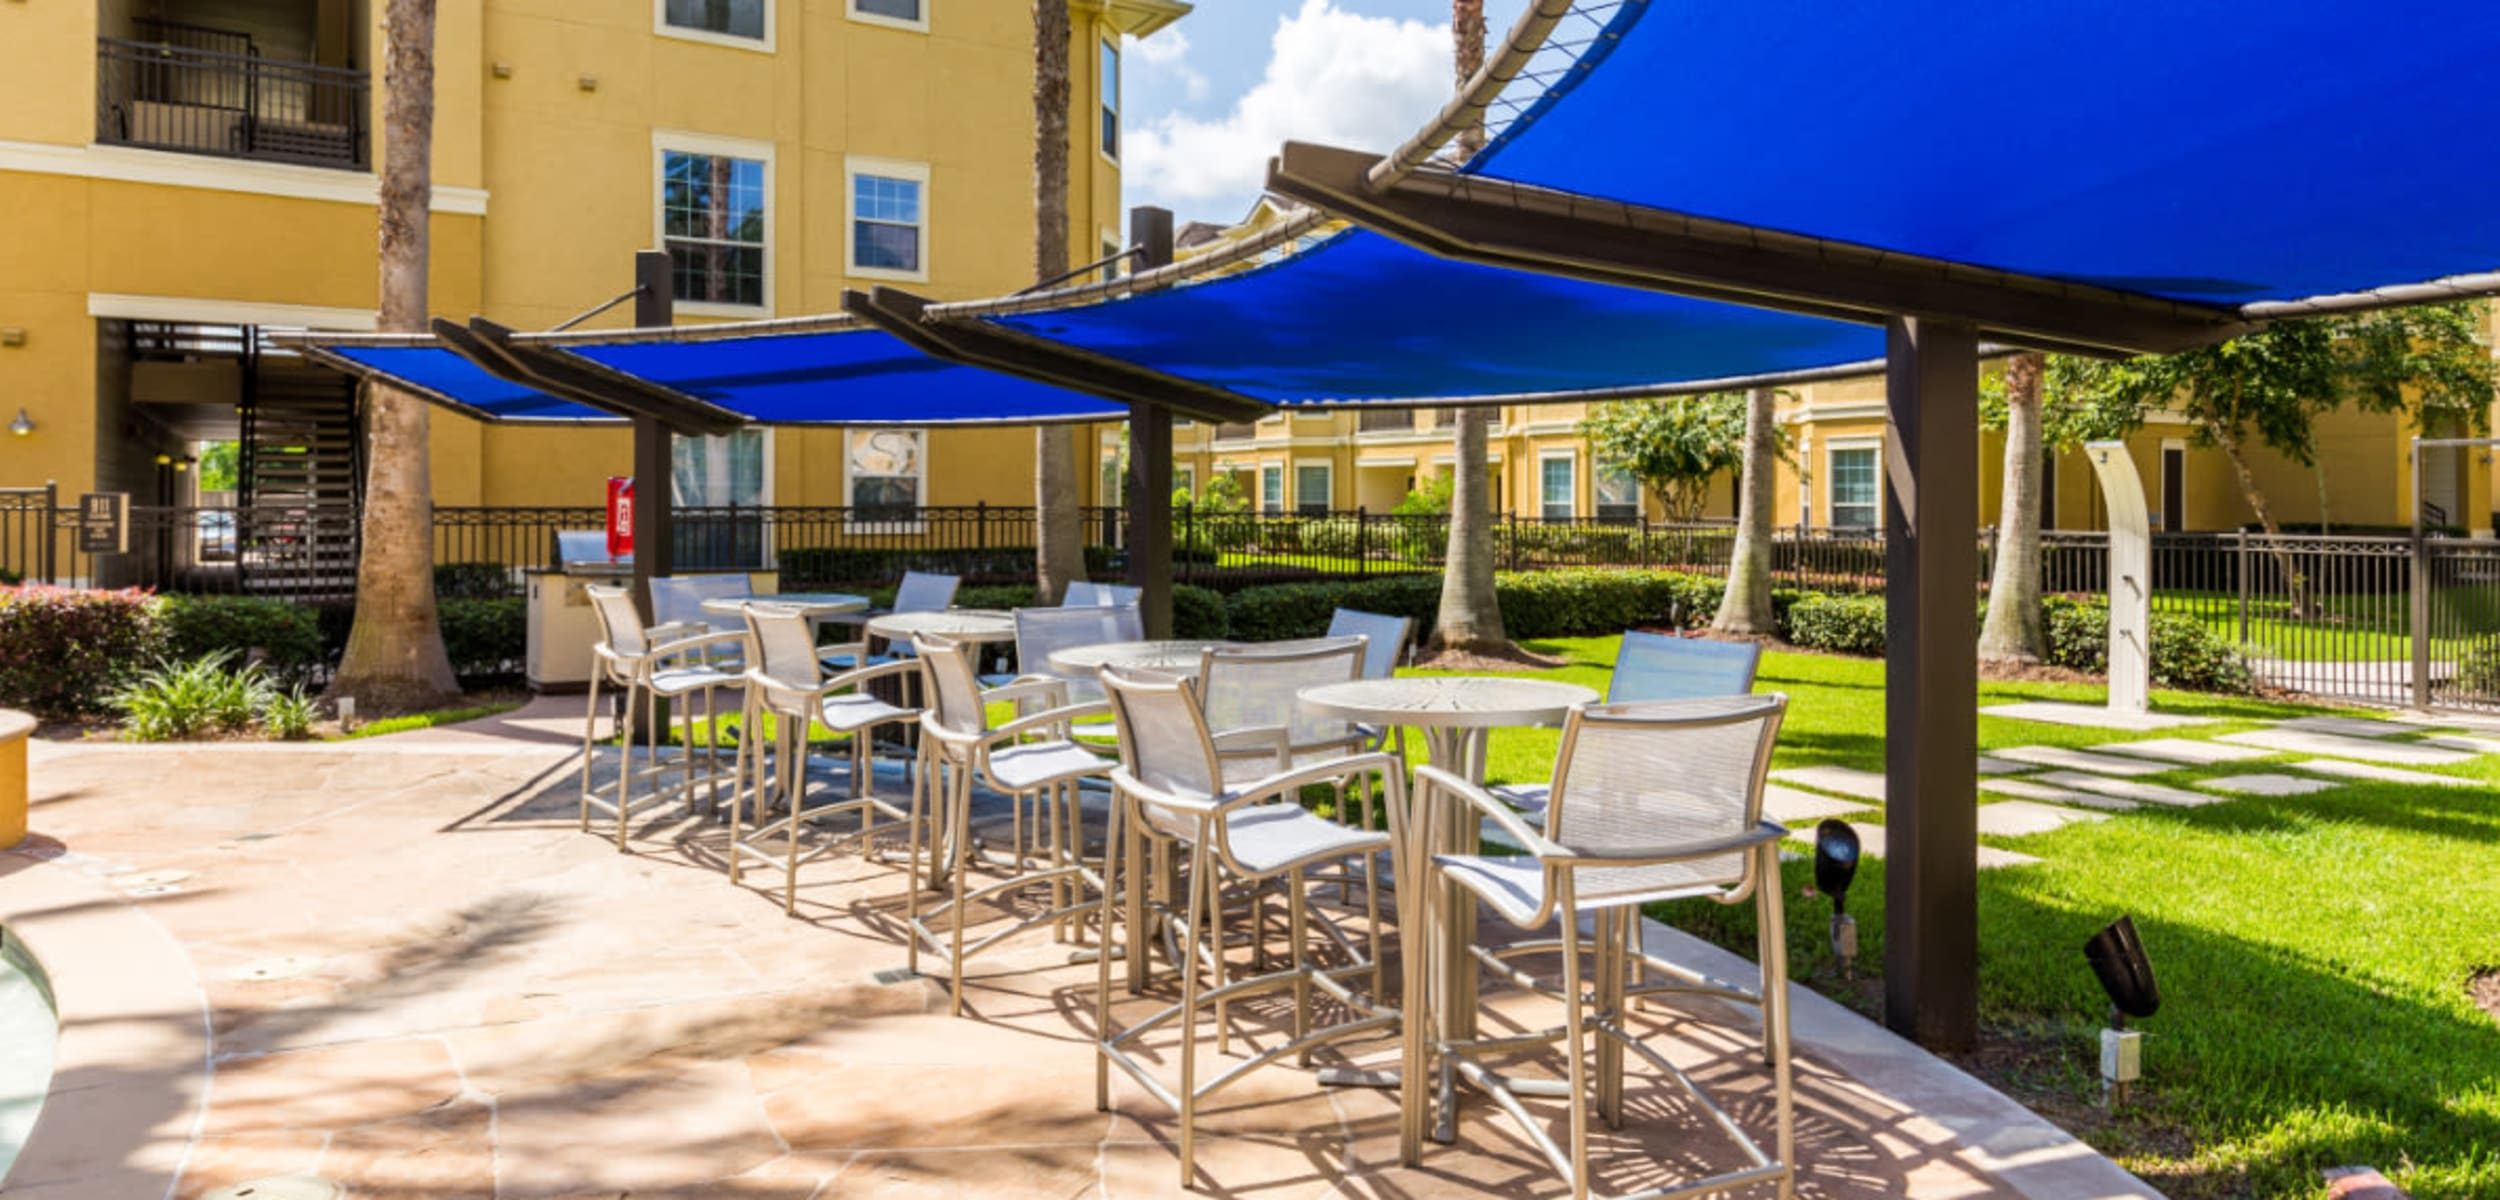 Shaded dining chairs and tables at Marquis at Clear Lake in Webster, Texas